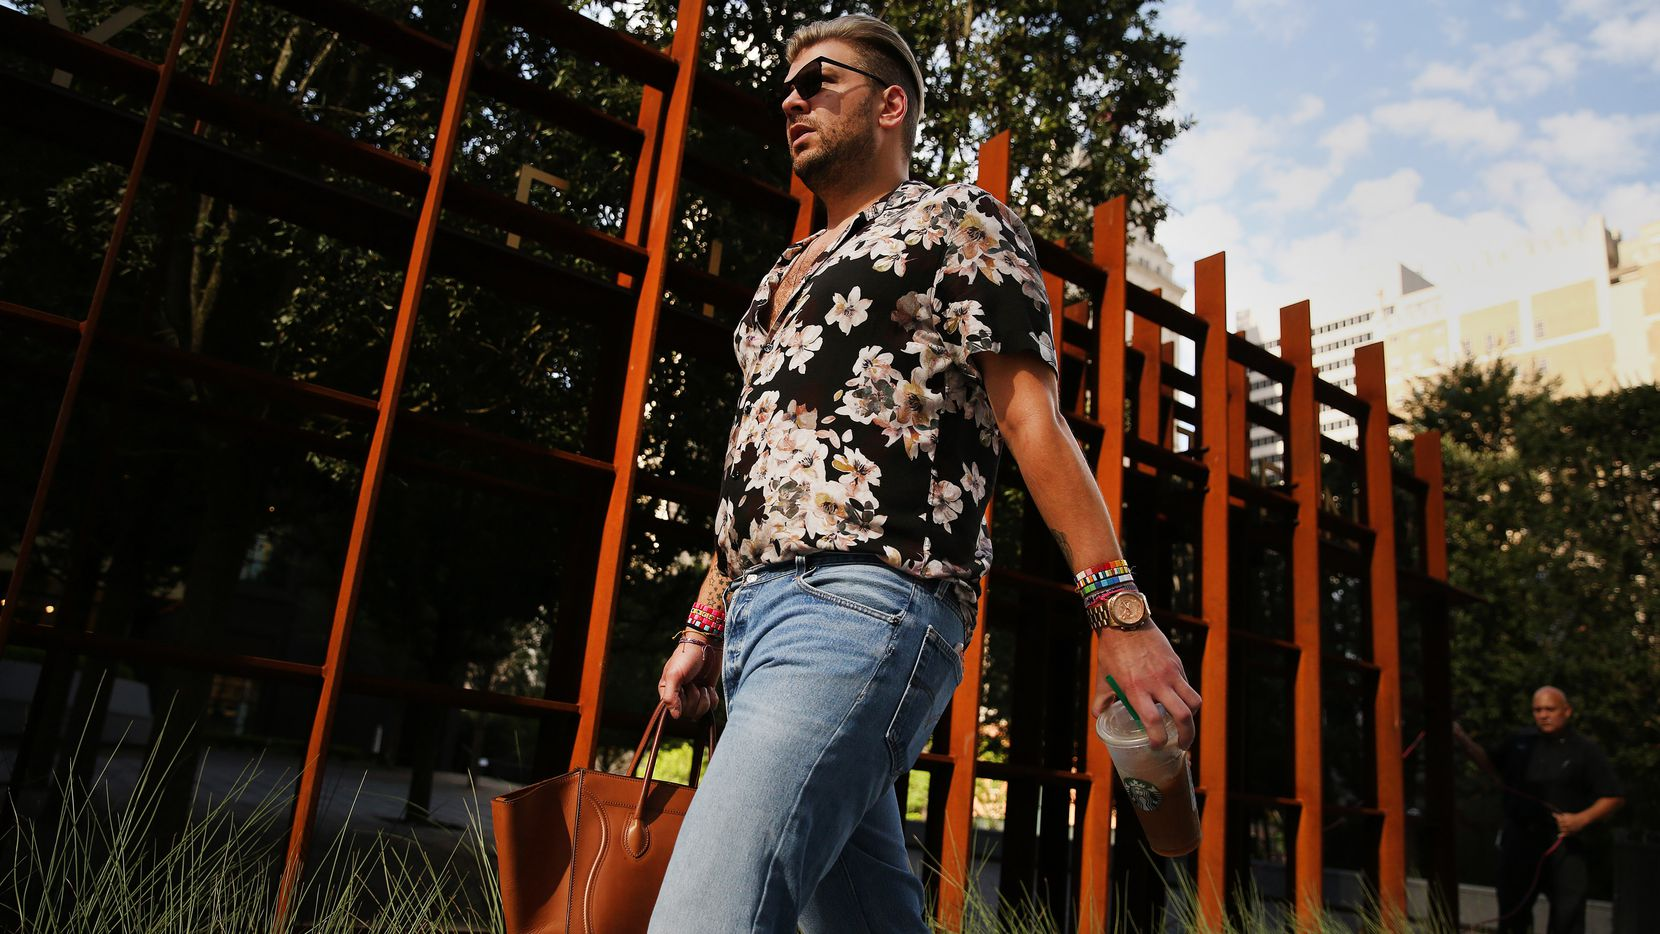 Reed Robertson, of Dallas, walks to work at Forty Five Ten along Elm Street while The Dallas Morning News takes a look at style and fashion in the Dallas central business district Tuesday July 11, 2017.